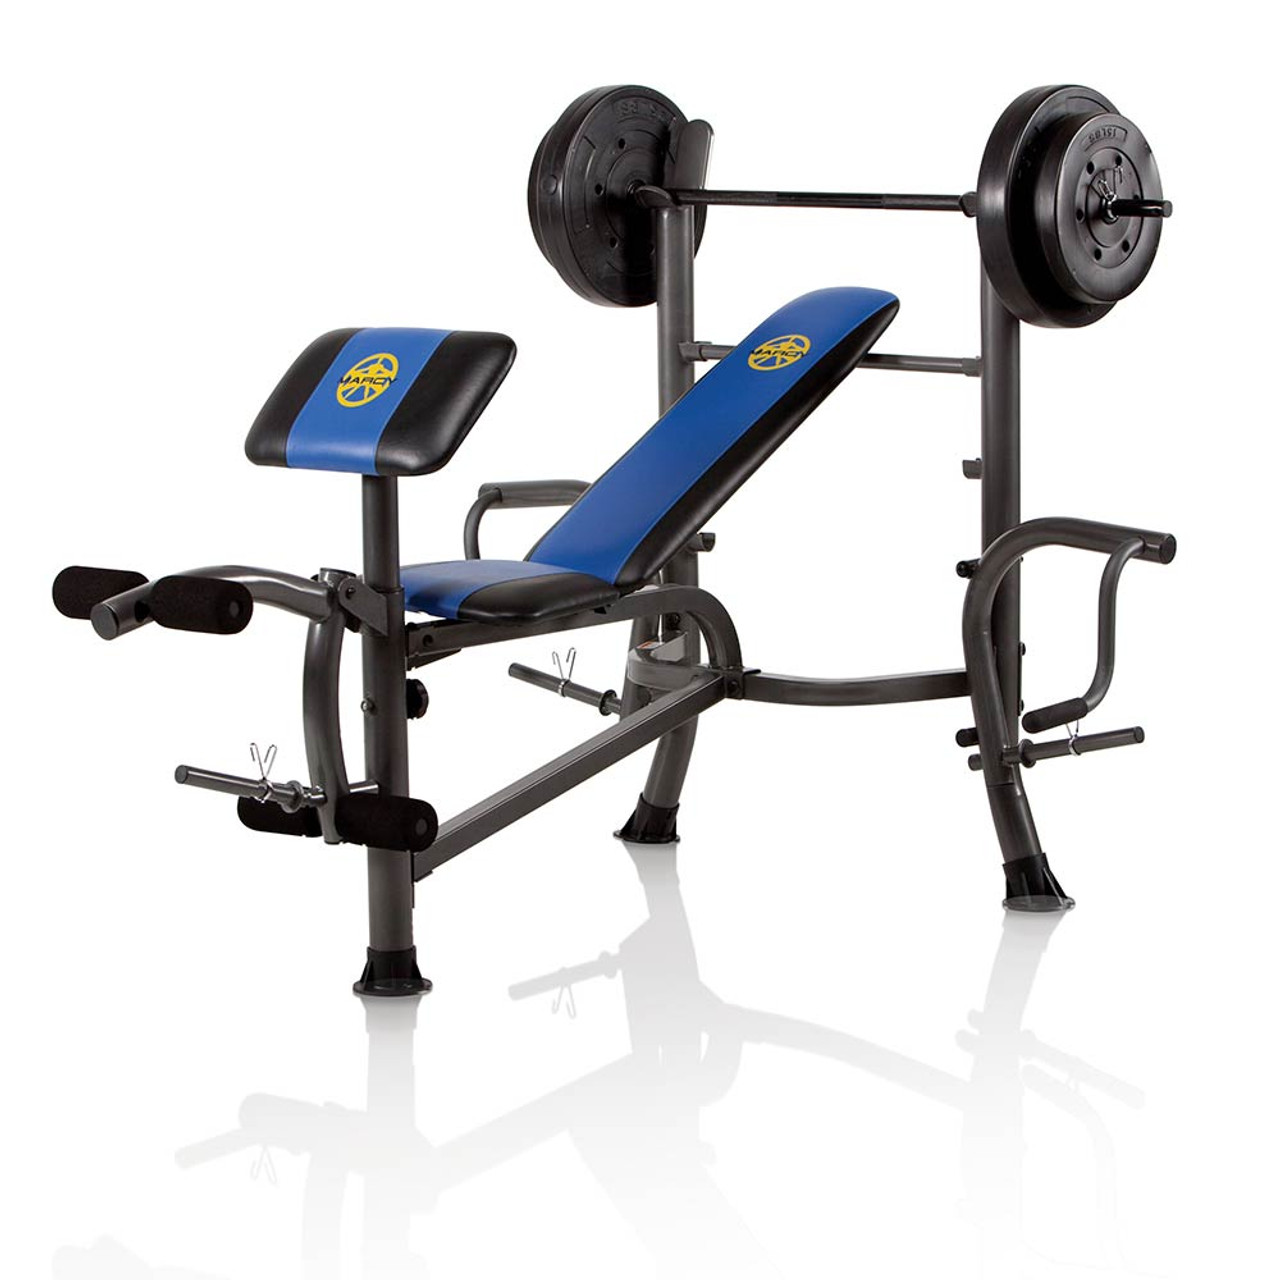 Marcy Standard Bench 80 Lb Weight Set Heavy Duty High